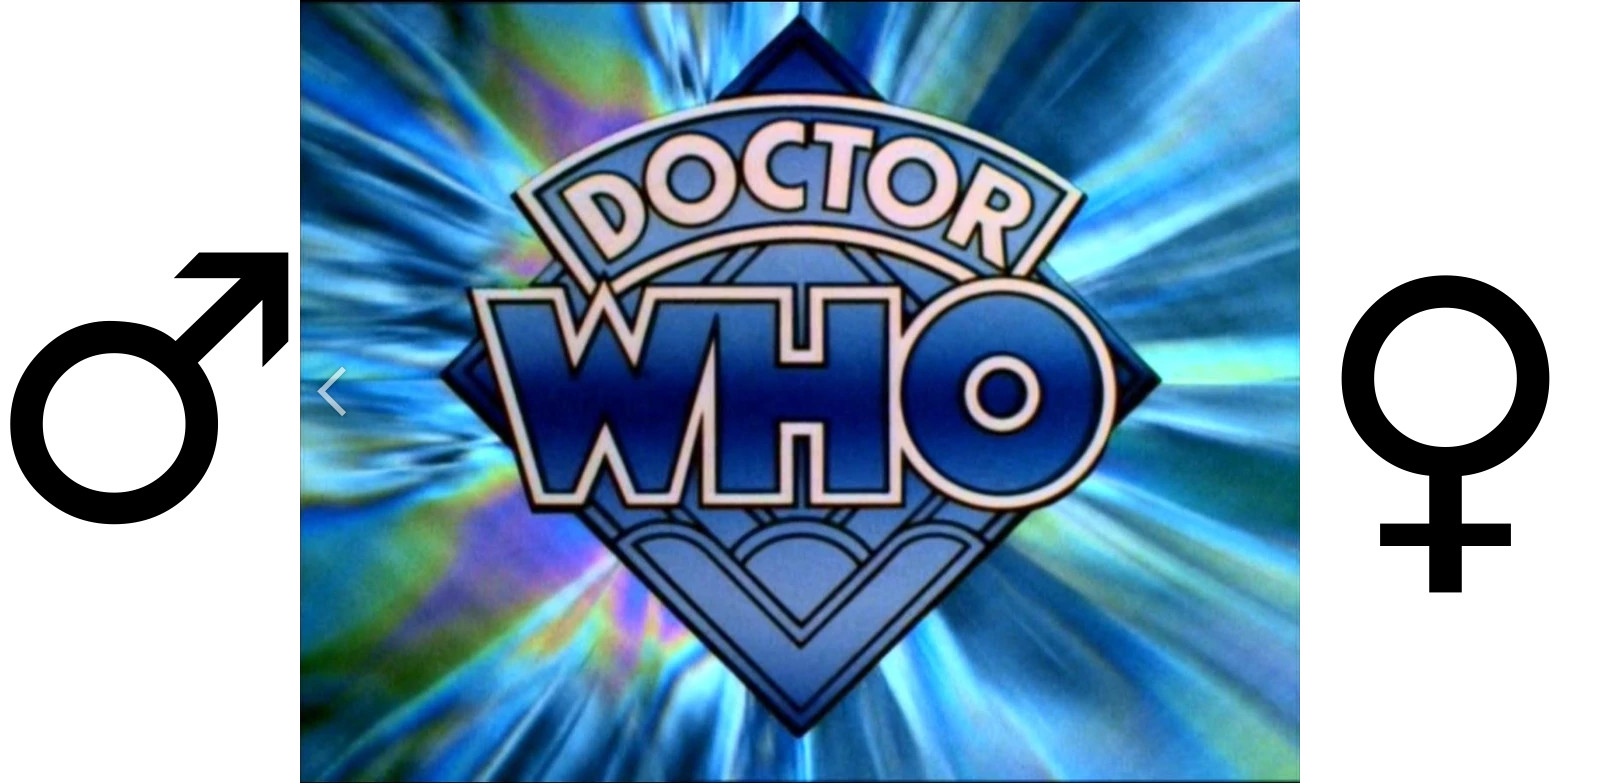 Doctor Who: Continuity and Gender Politics